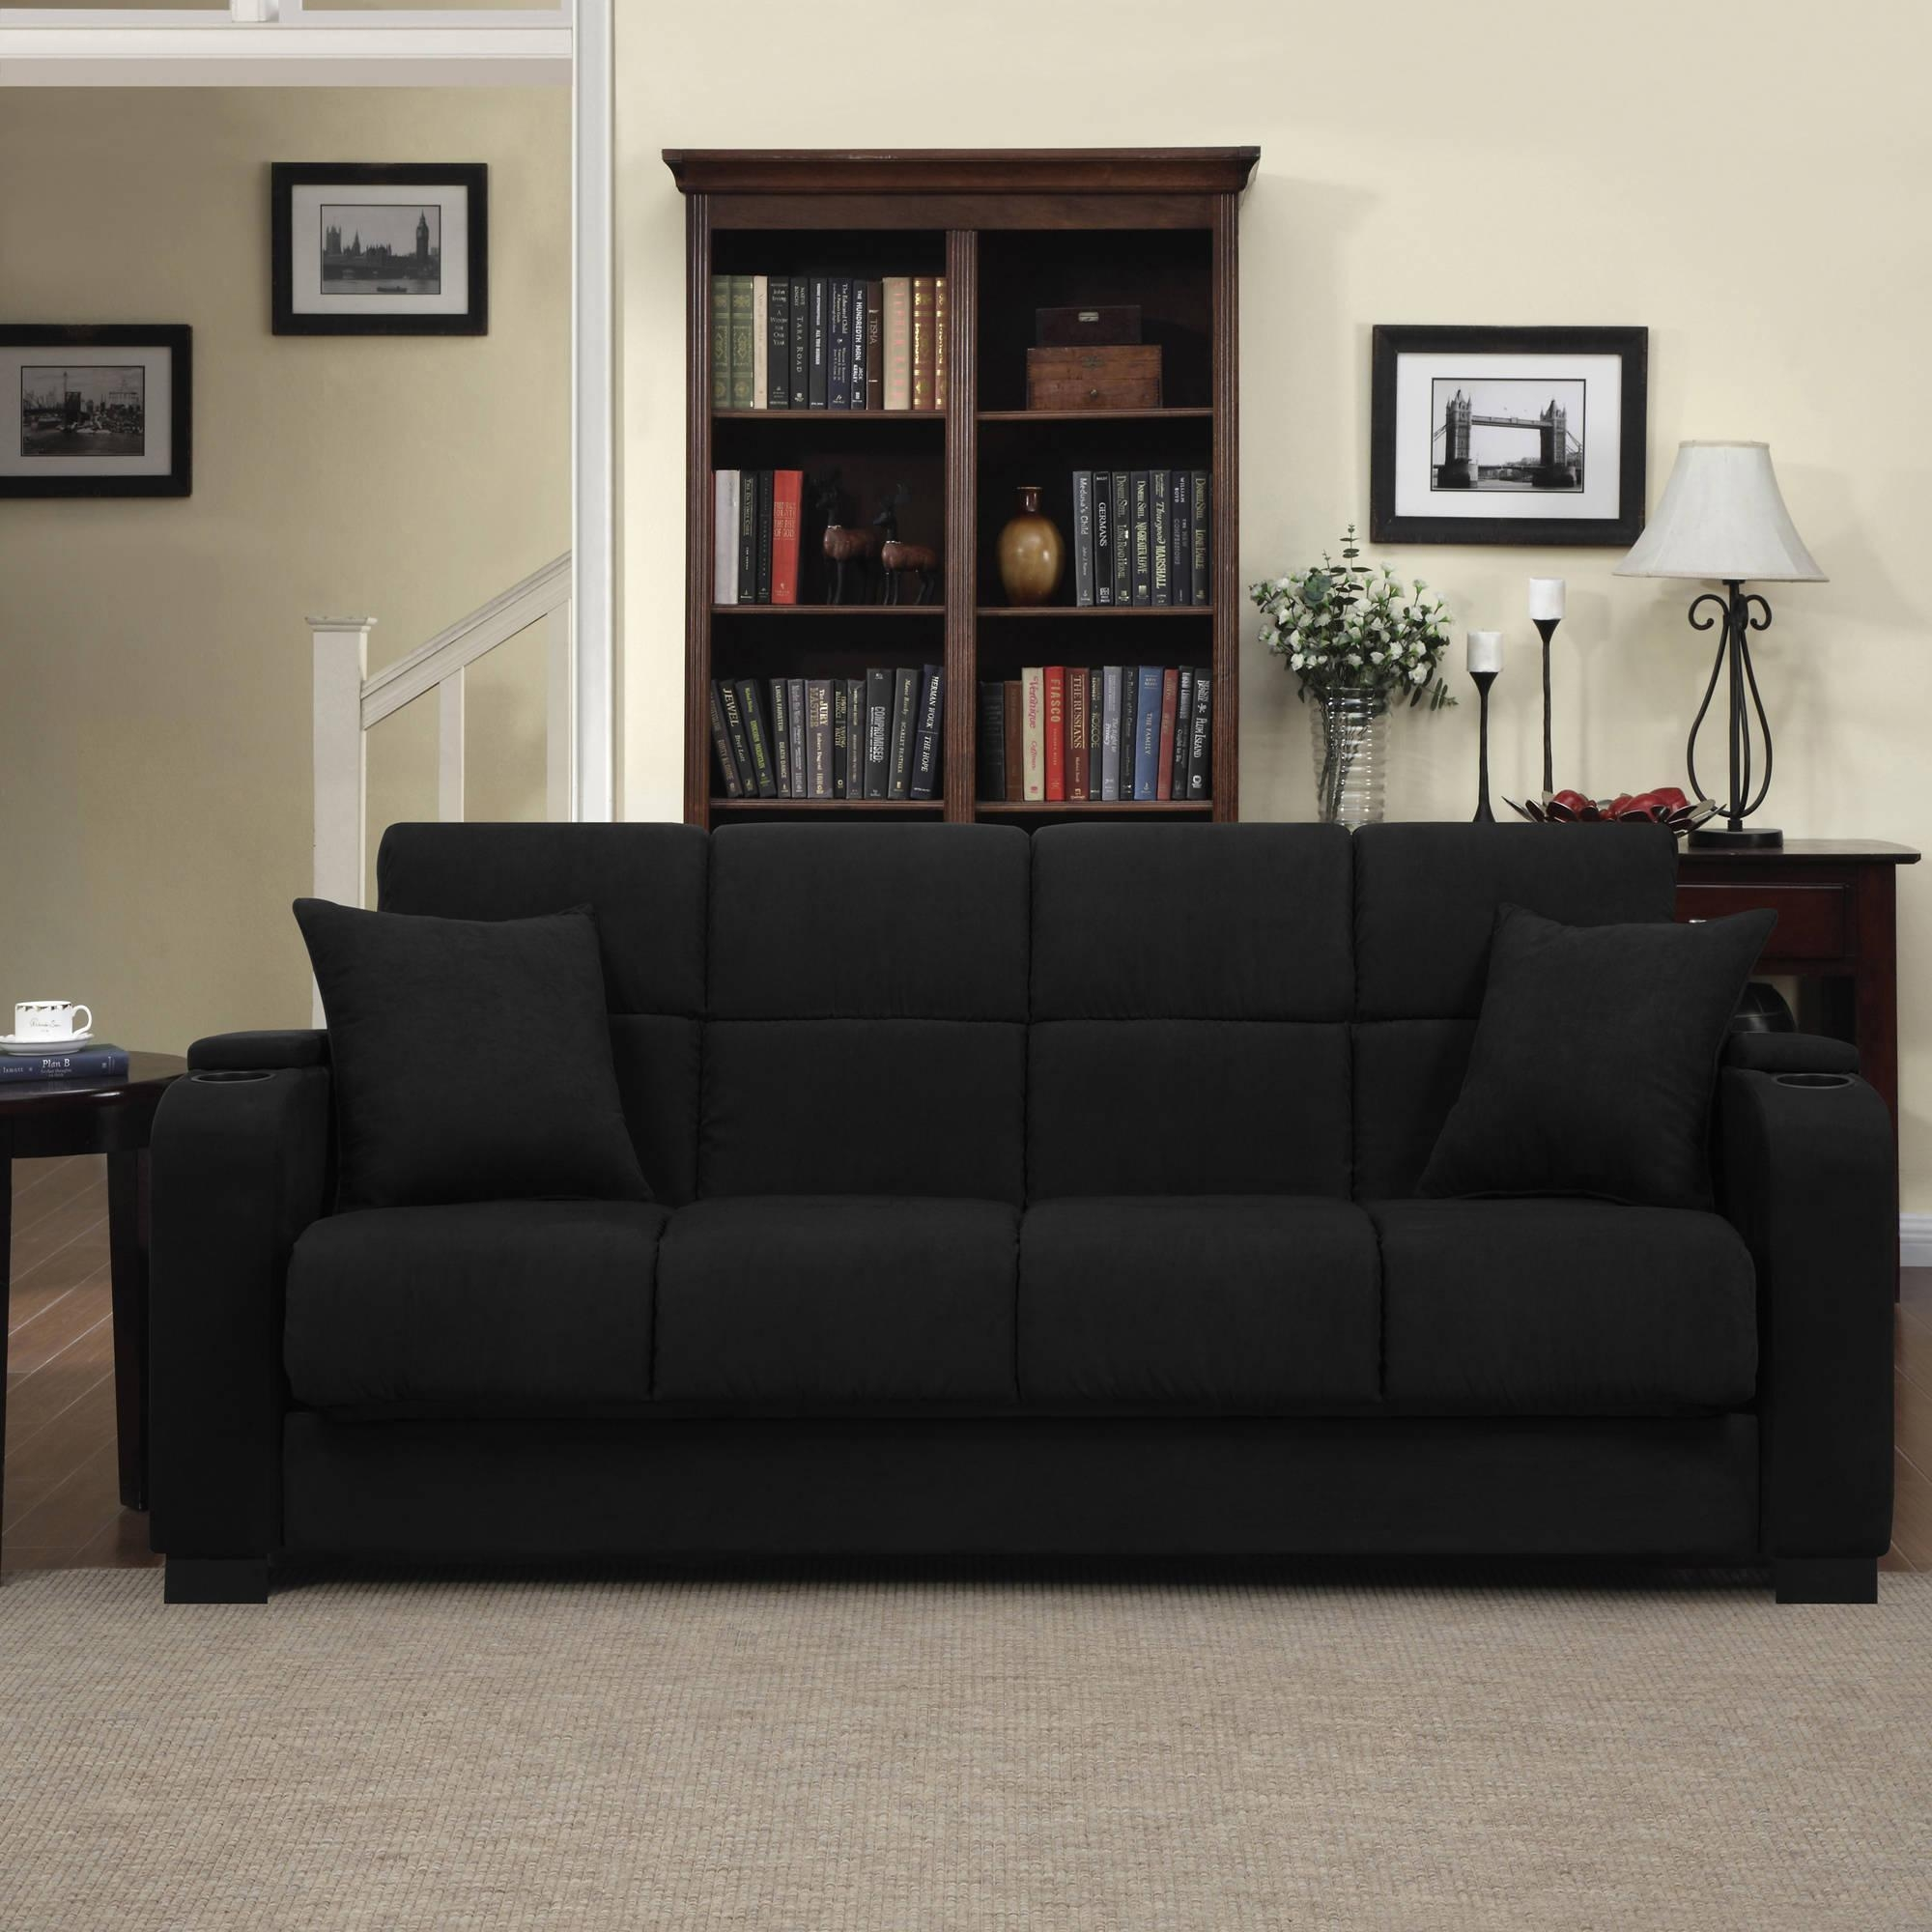 Furniture: Couch Covers At Walmart To Make Your Furniture Stylish Regarding Cheap Black Sofas (Image 8 of 20)